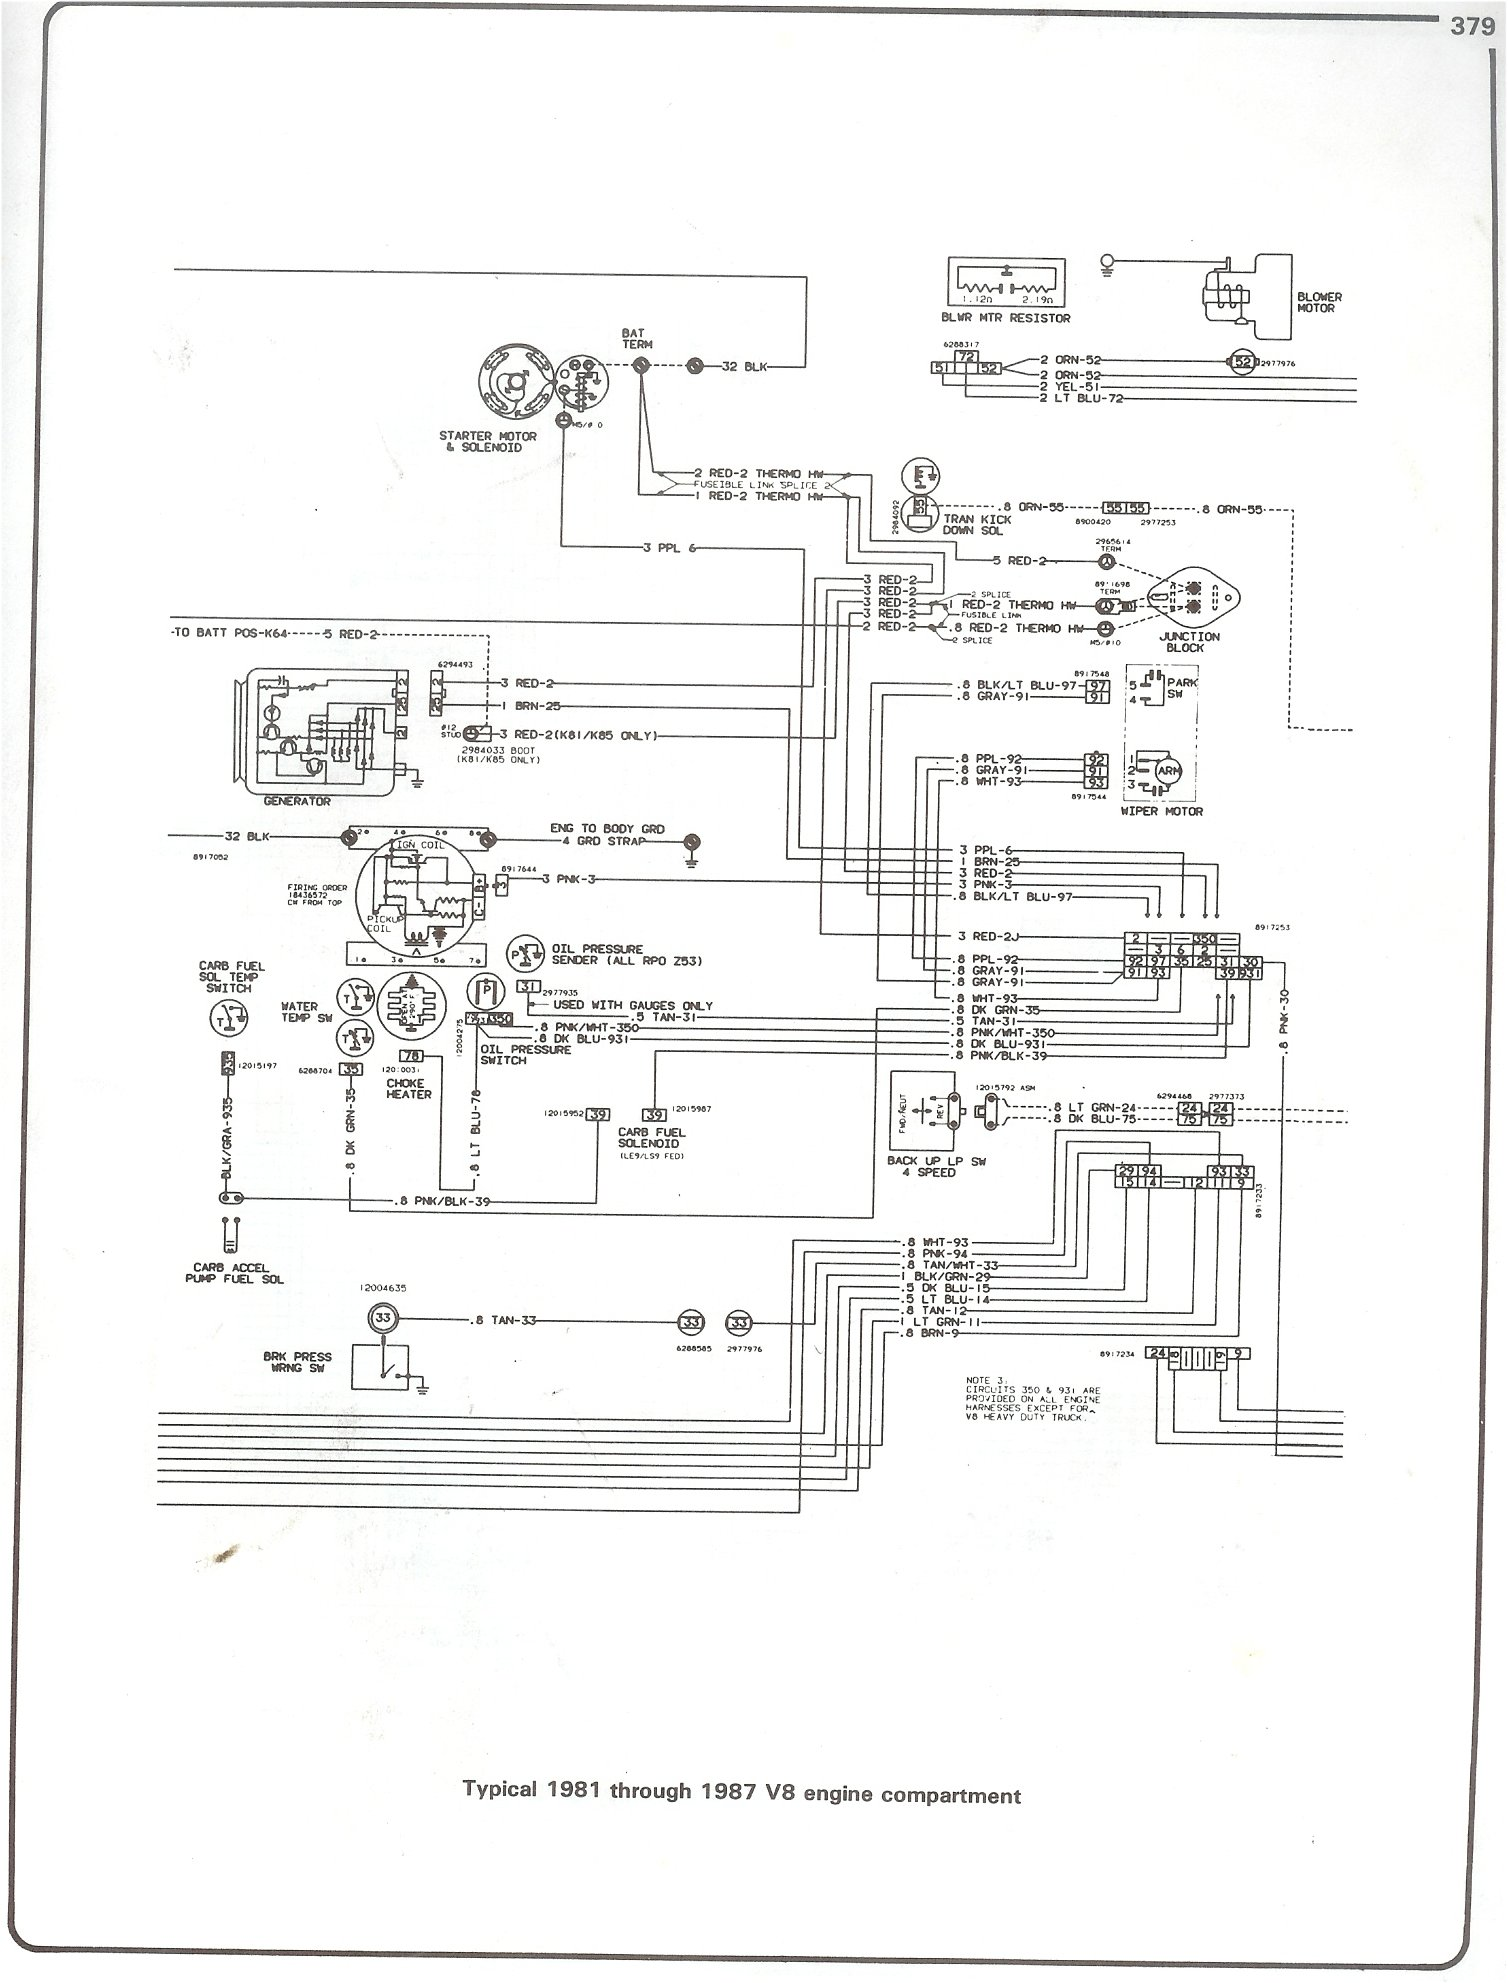 69 Suburban Wiring Schematic Library 2004 Pontiac Gto Diagram 1974 Chevy C10 Schematics Opinions About U2022 1973